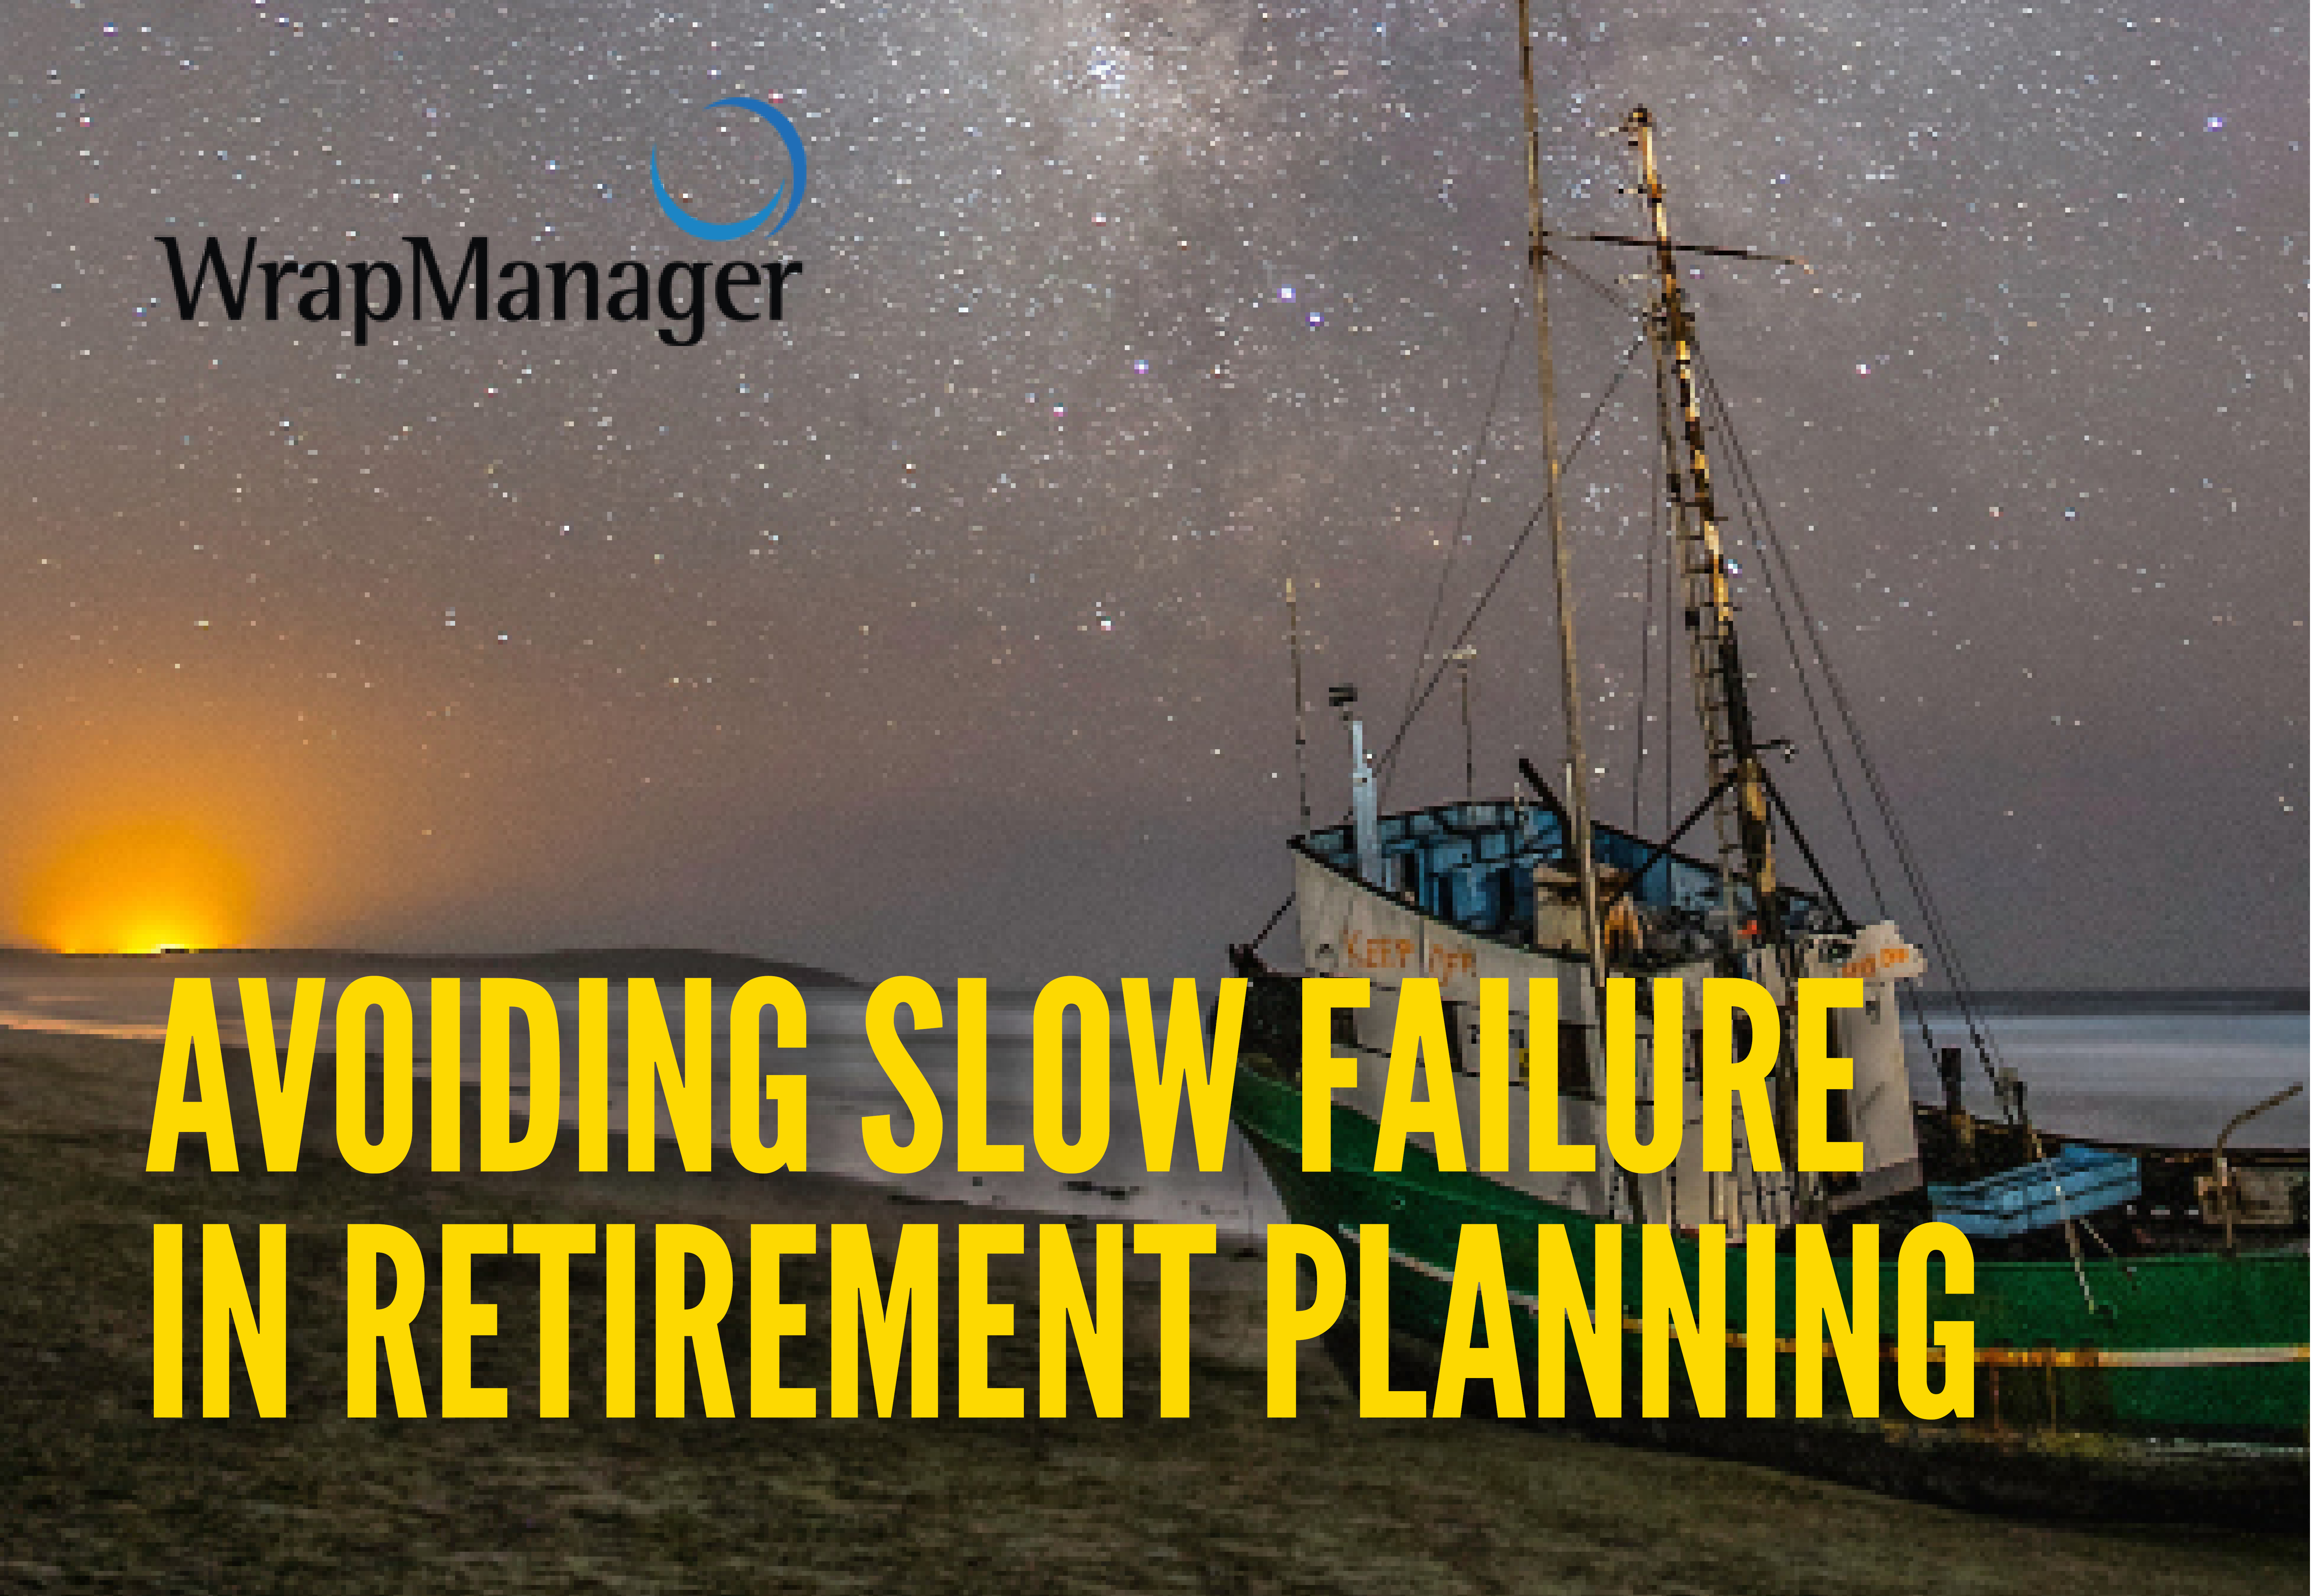 Newfound Research - Avoiding Slow Failure in Retirement Planning